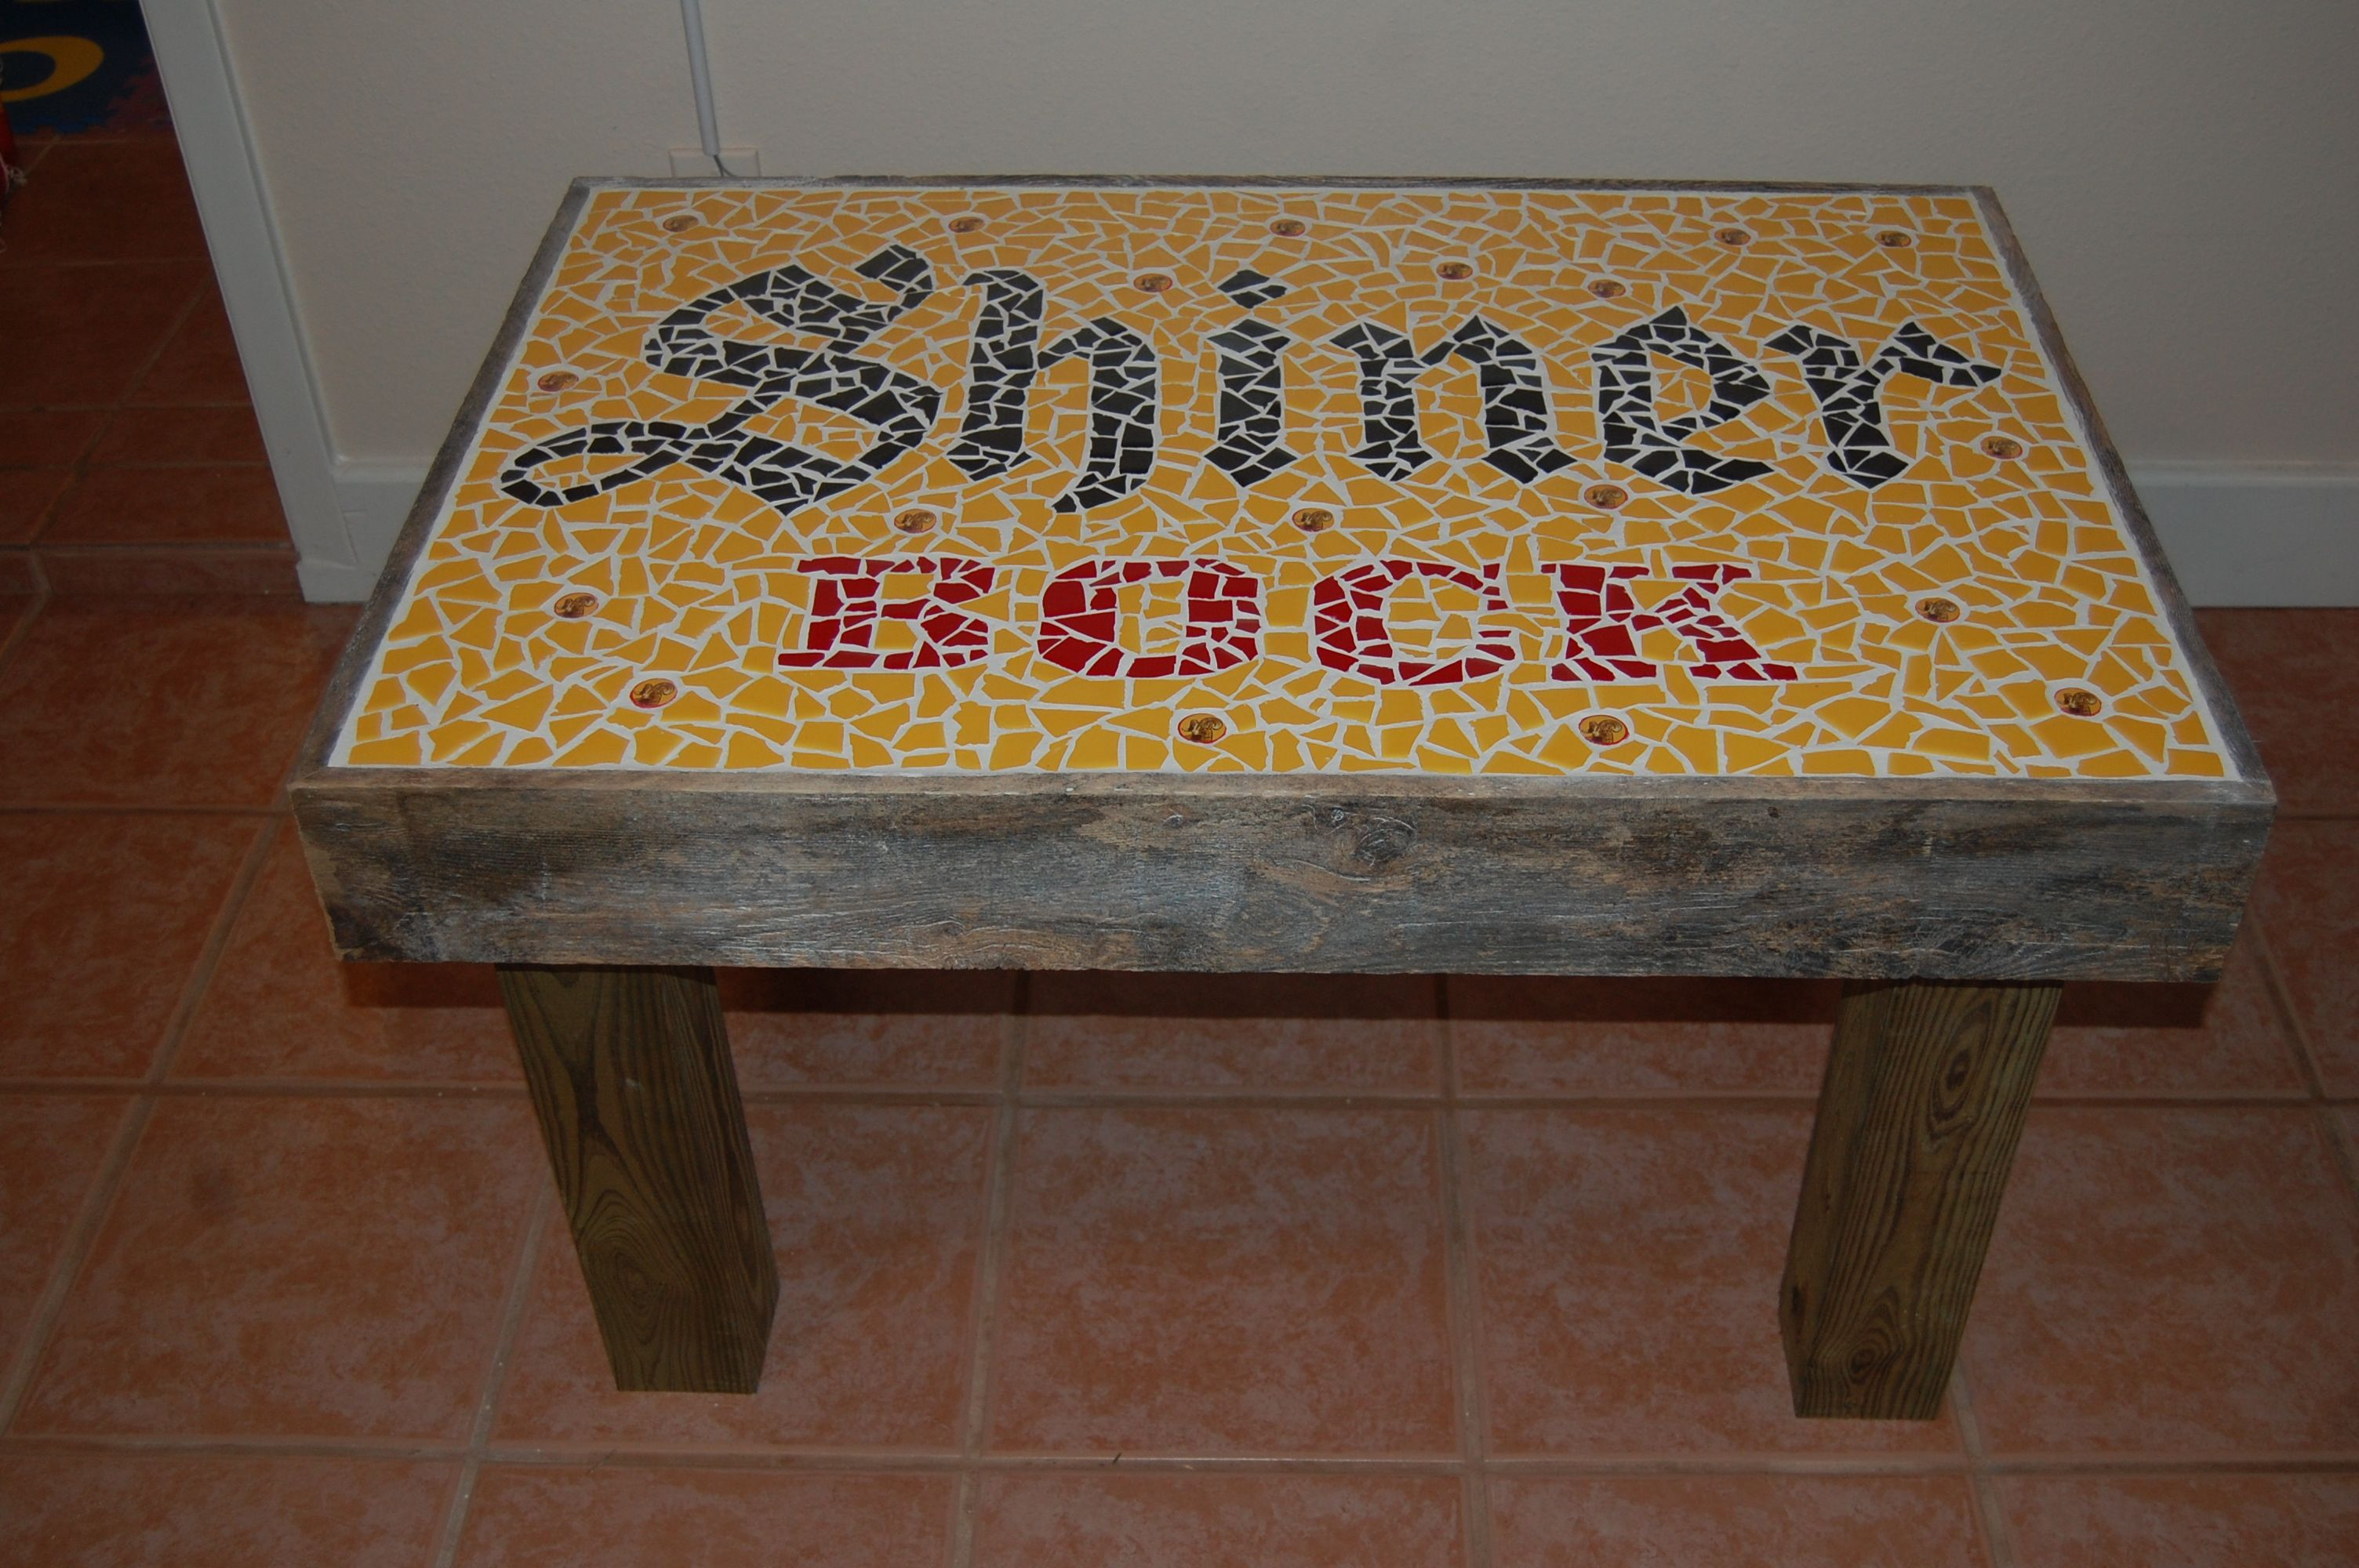 Shiner Bock Mosaic Coffee Table With Tile U0026 Shiner Bock Bottle Caps. Bottle  Cap CraftsBeer ...